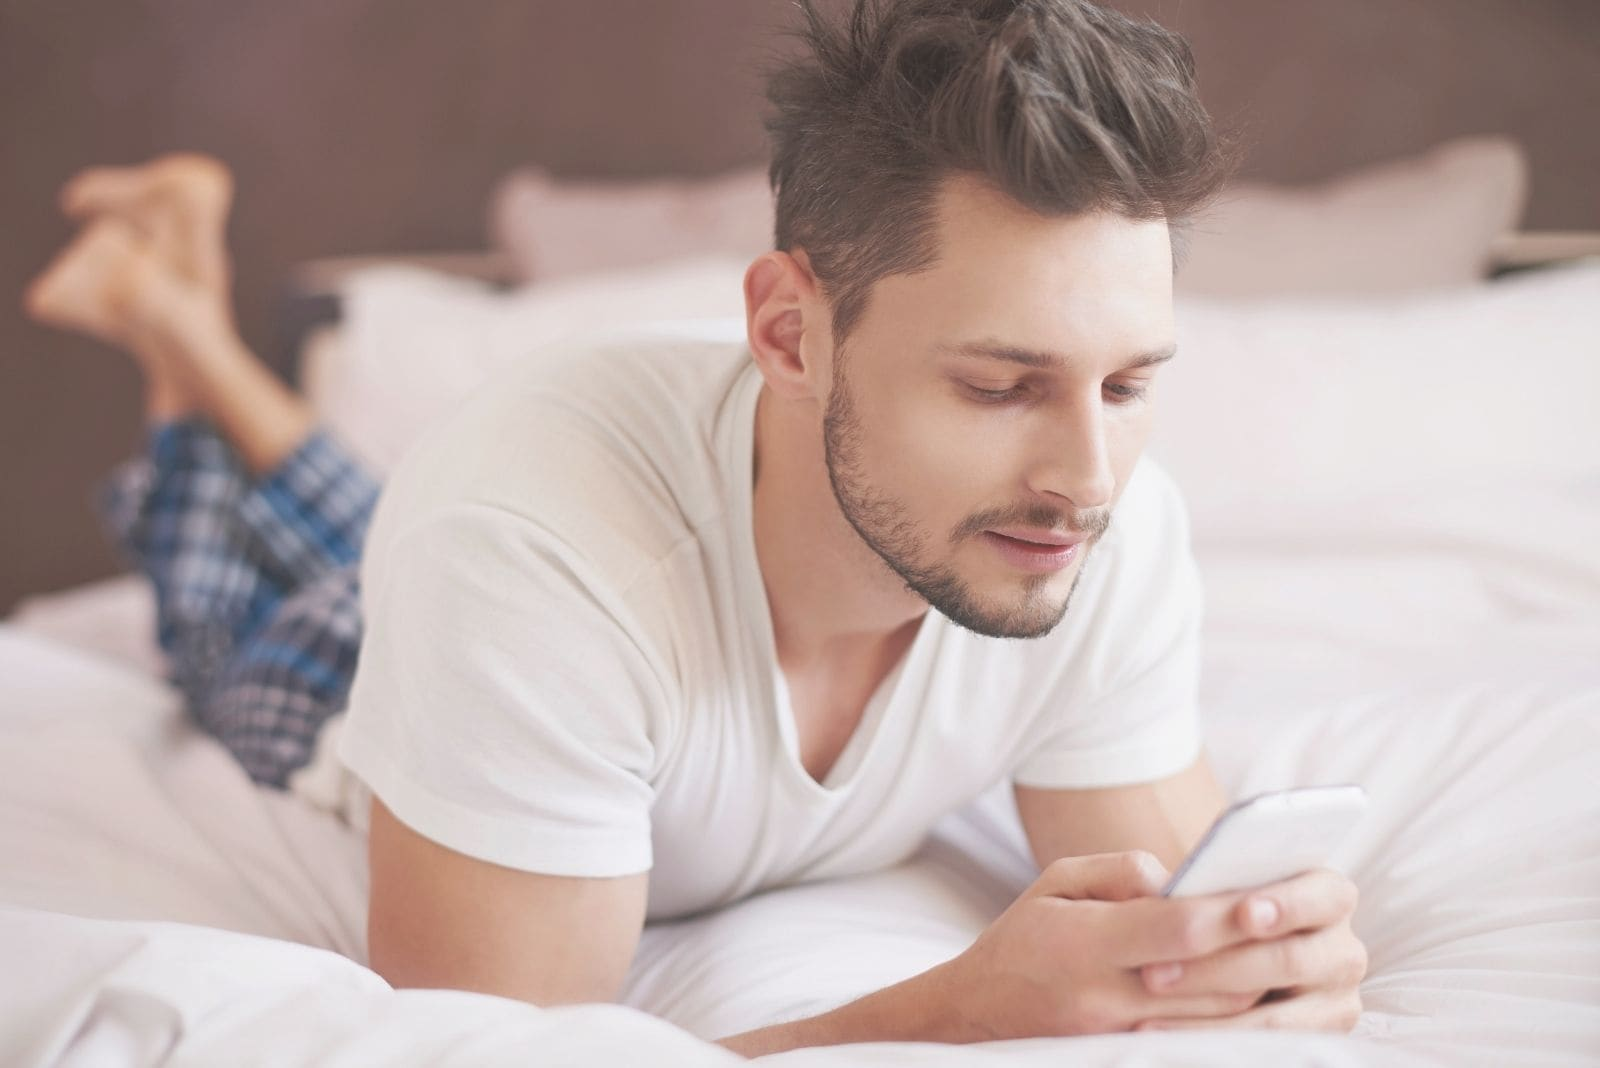 man in bed texting lying with elbows supporting the body wearing pajamas